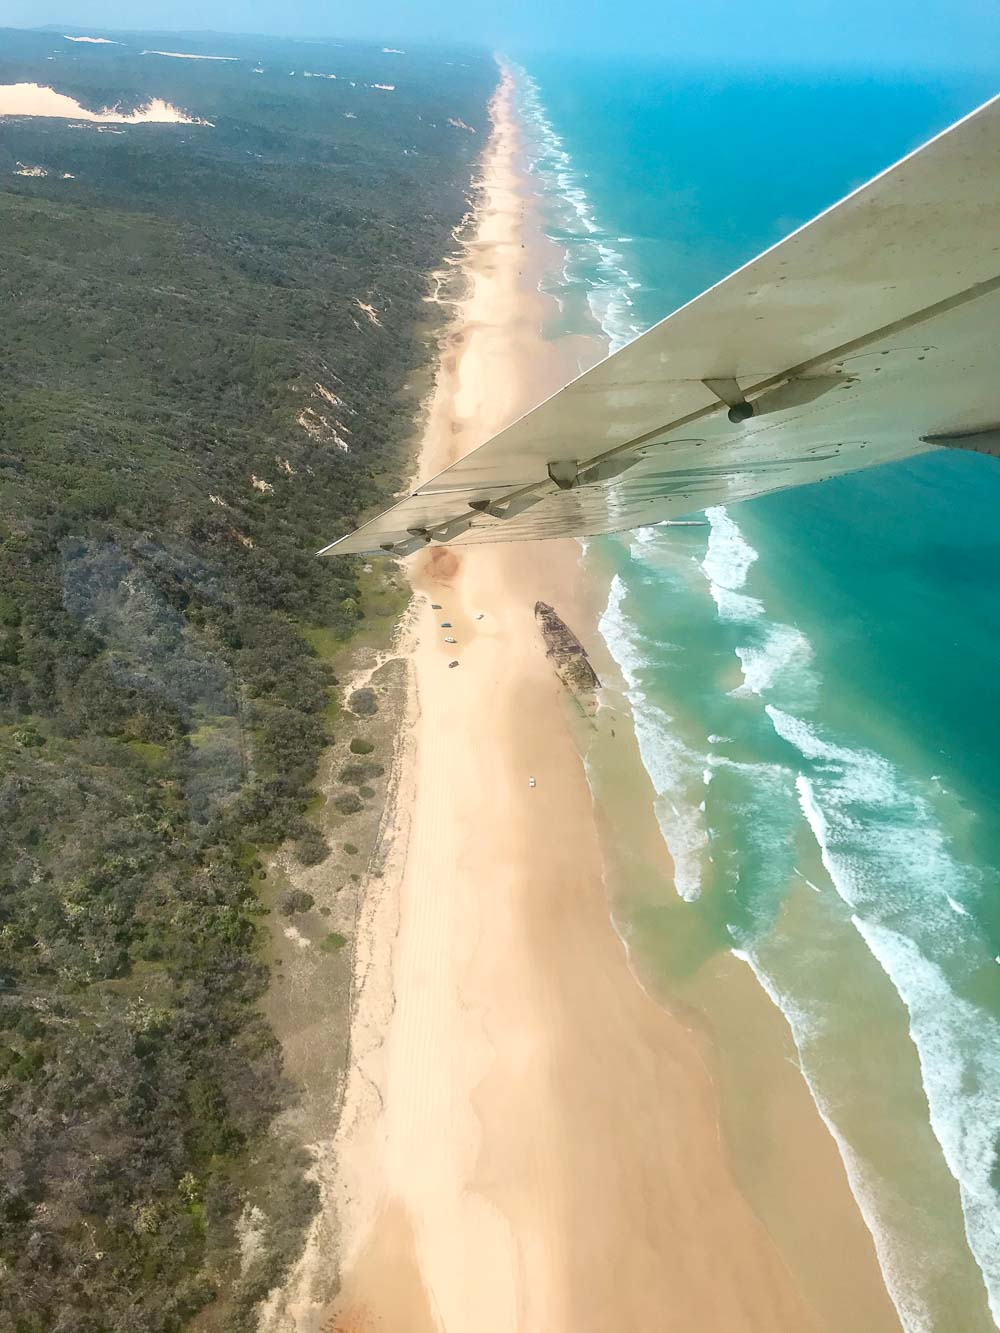 8 Fraser Island - The Largest Sand Island In The World